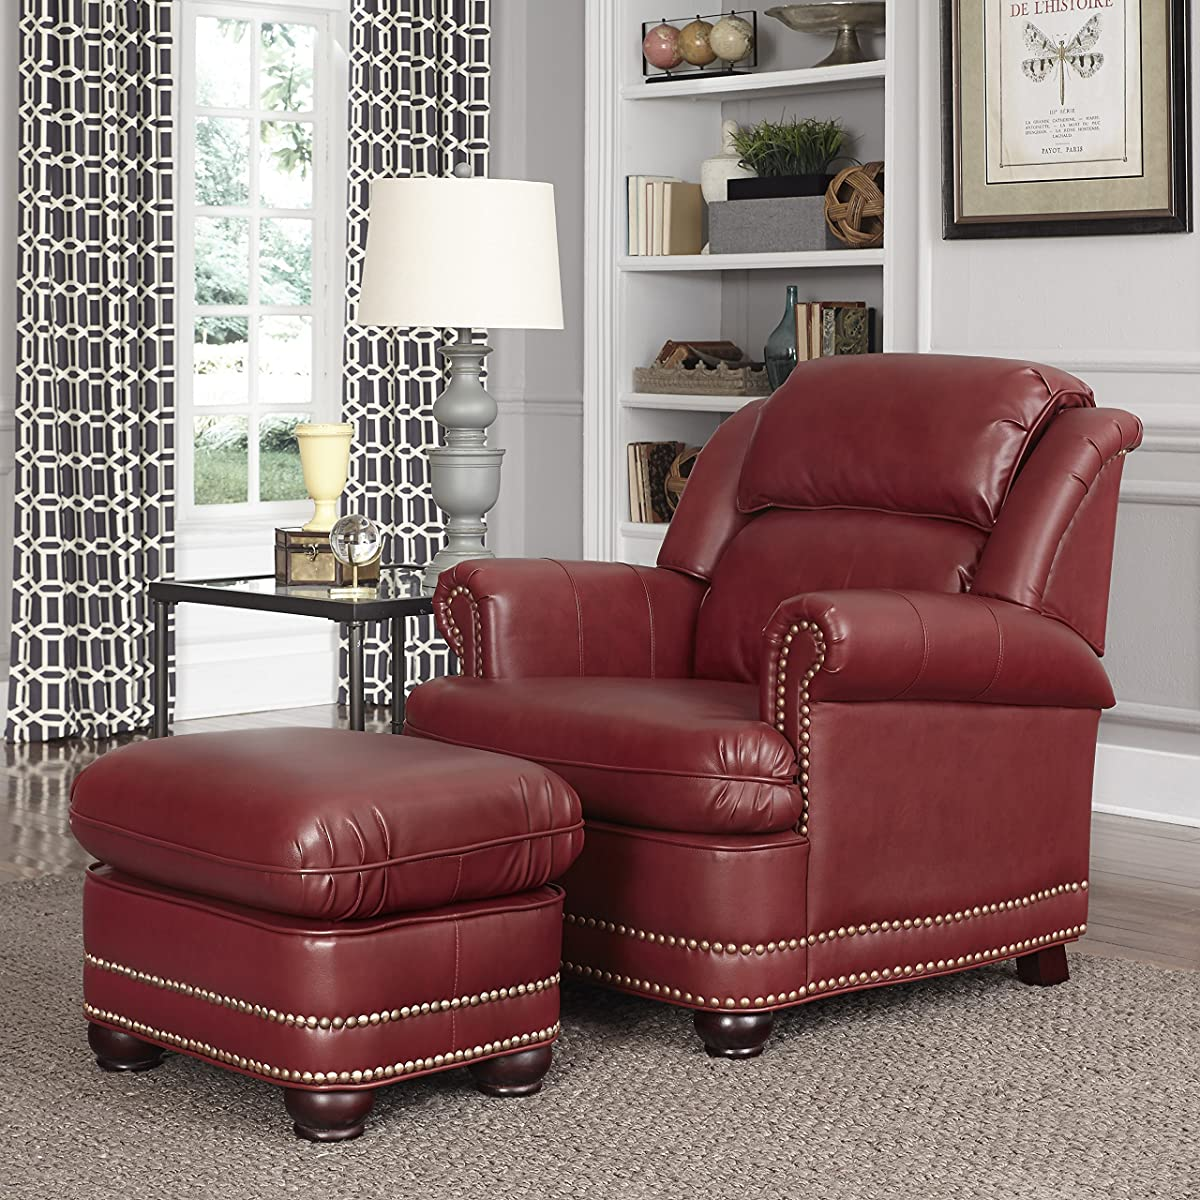 Home Styles 5201-100 Winston Stationary Chair and Ottoman, Garnet Red